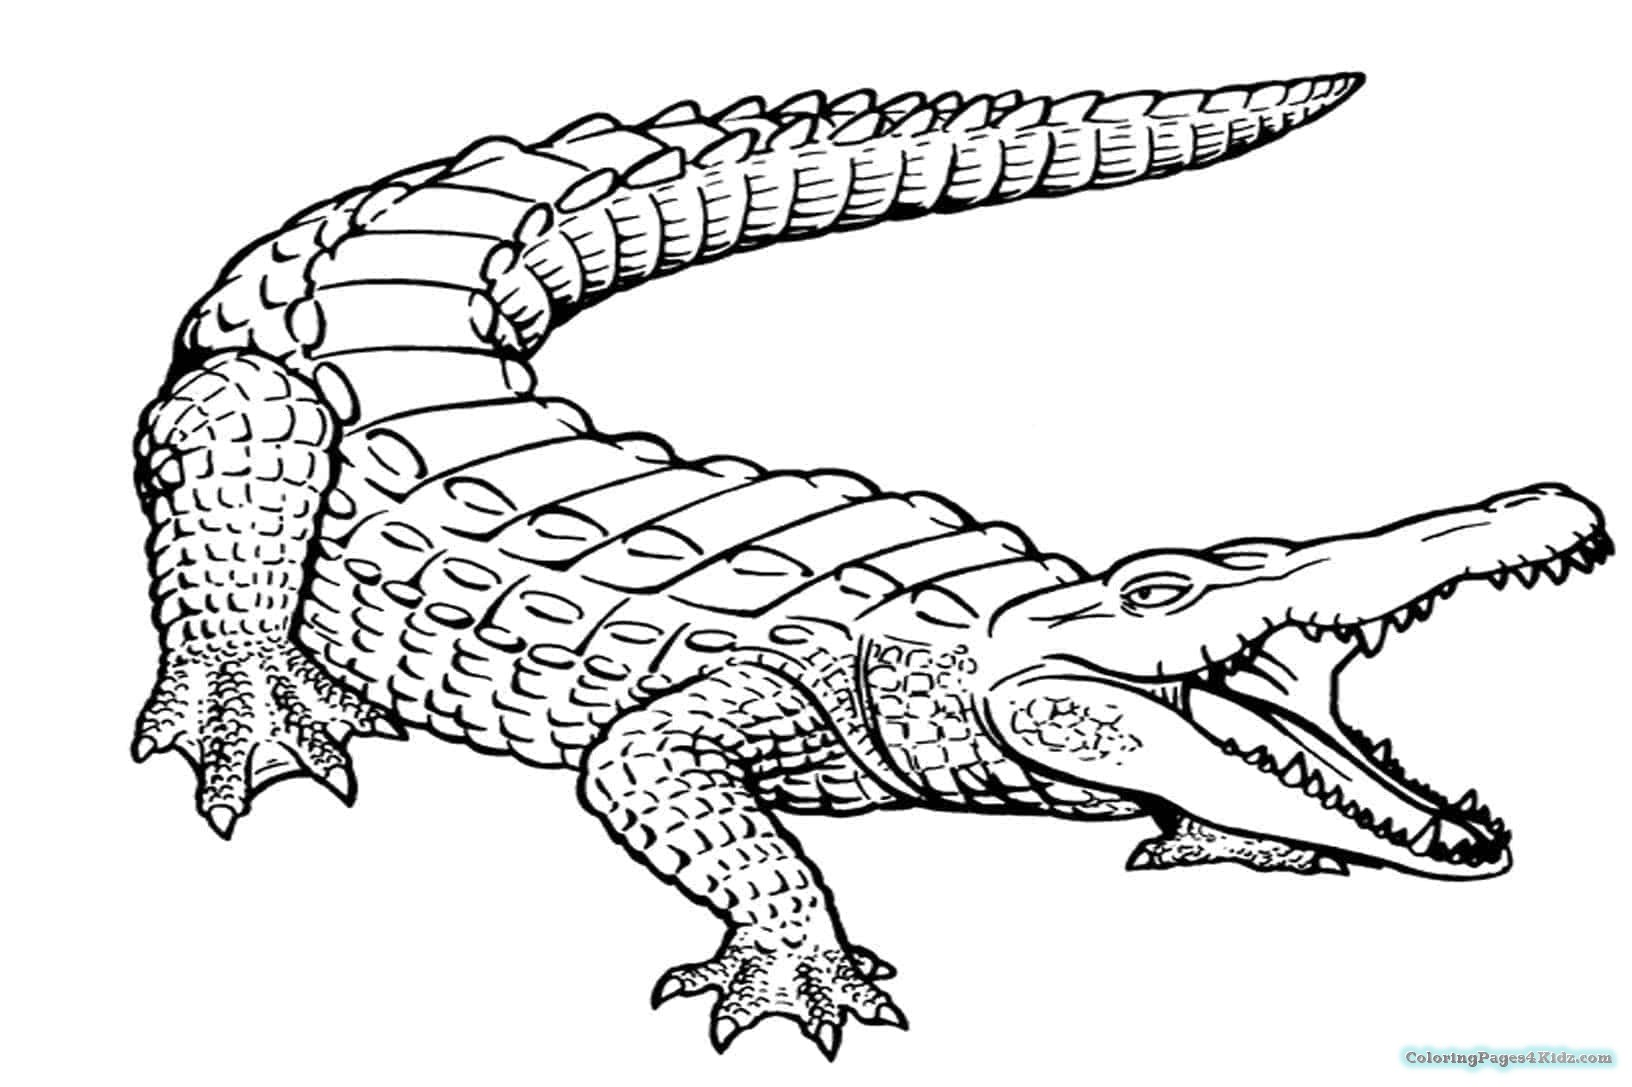 1632x1087 Alligator Cute Coloring Pages Coloring Pages For Kids